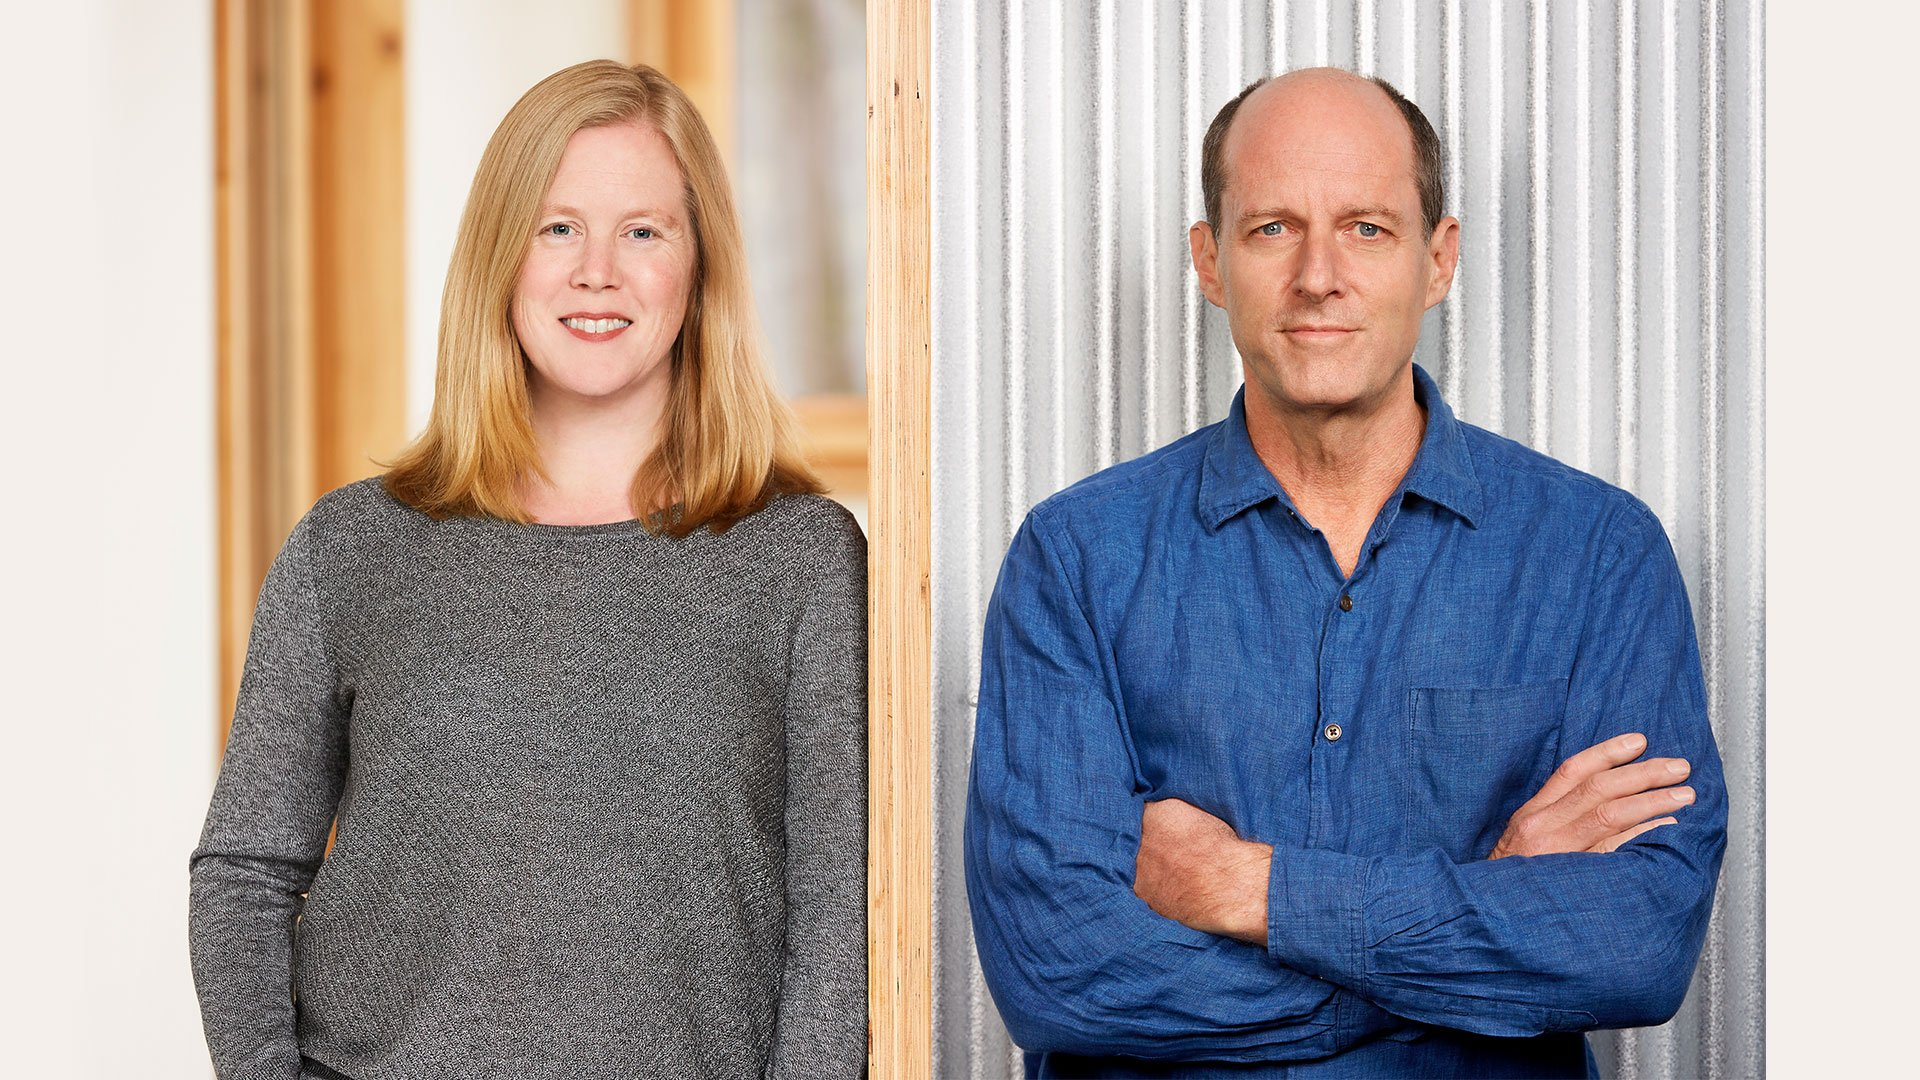 Stephanie Bassler, RA, CPHC & Peter Reynolds of North River Architecture lead the way in vernacular Passive House design